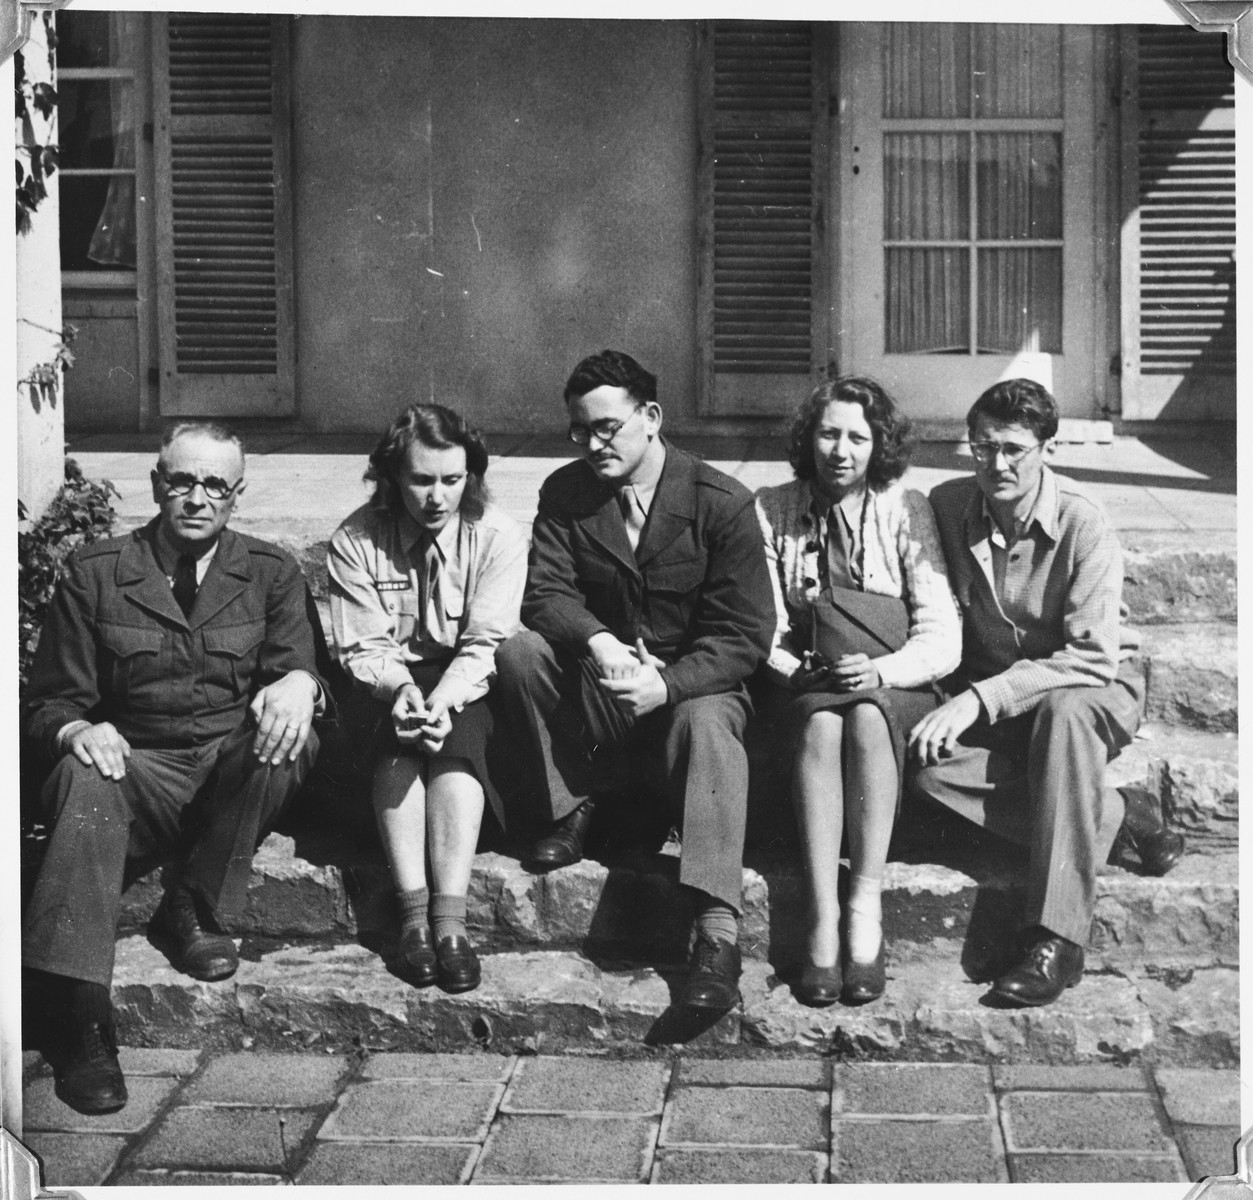 UNRRA staff of the Windsheim displaced persons' camp sit outdoors on the steps to a building .  Marion Pritchard is pictured second from the left.  Her husband Tony is on the far right.  In the center is Stanley Abramowitz.